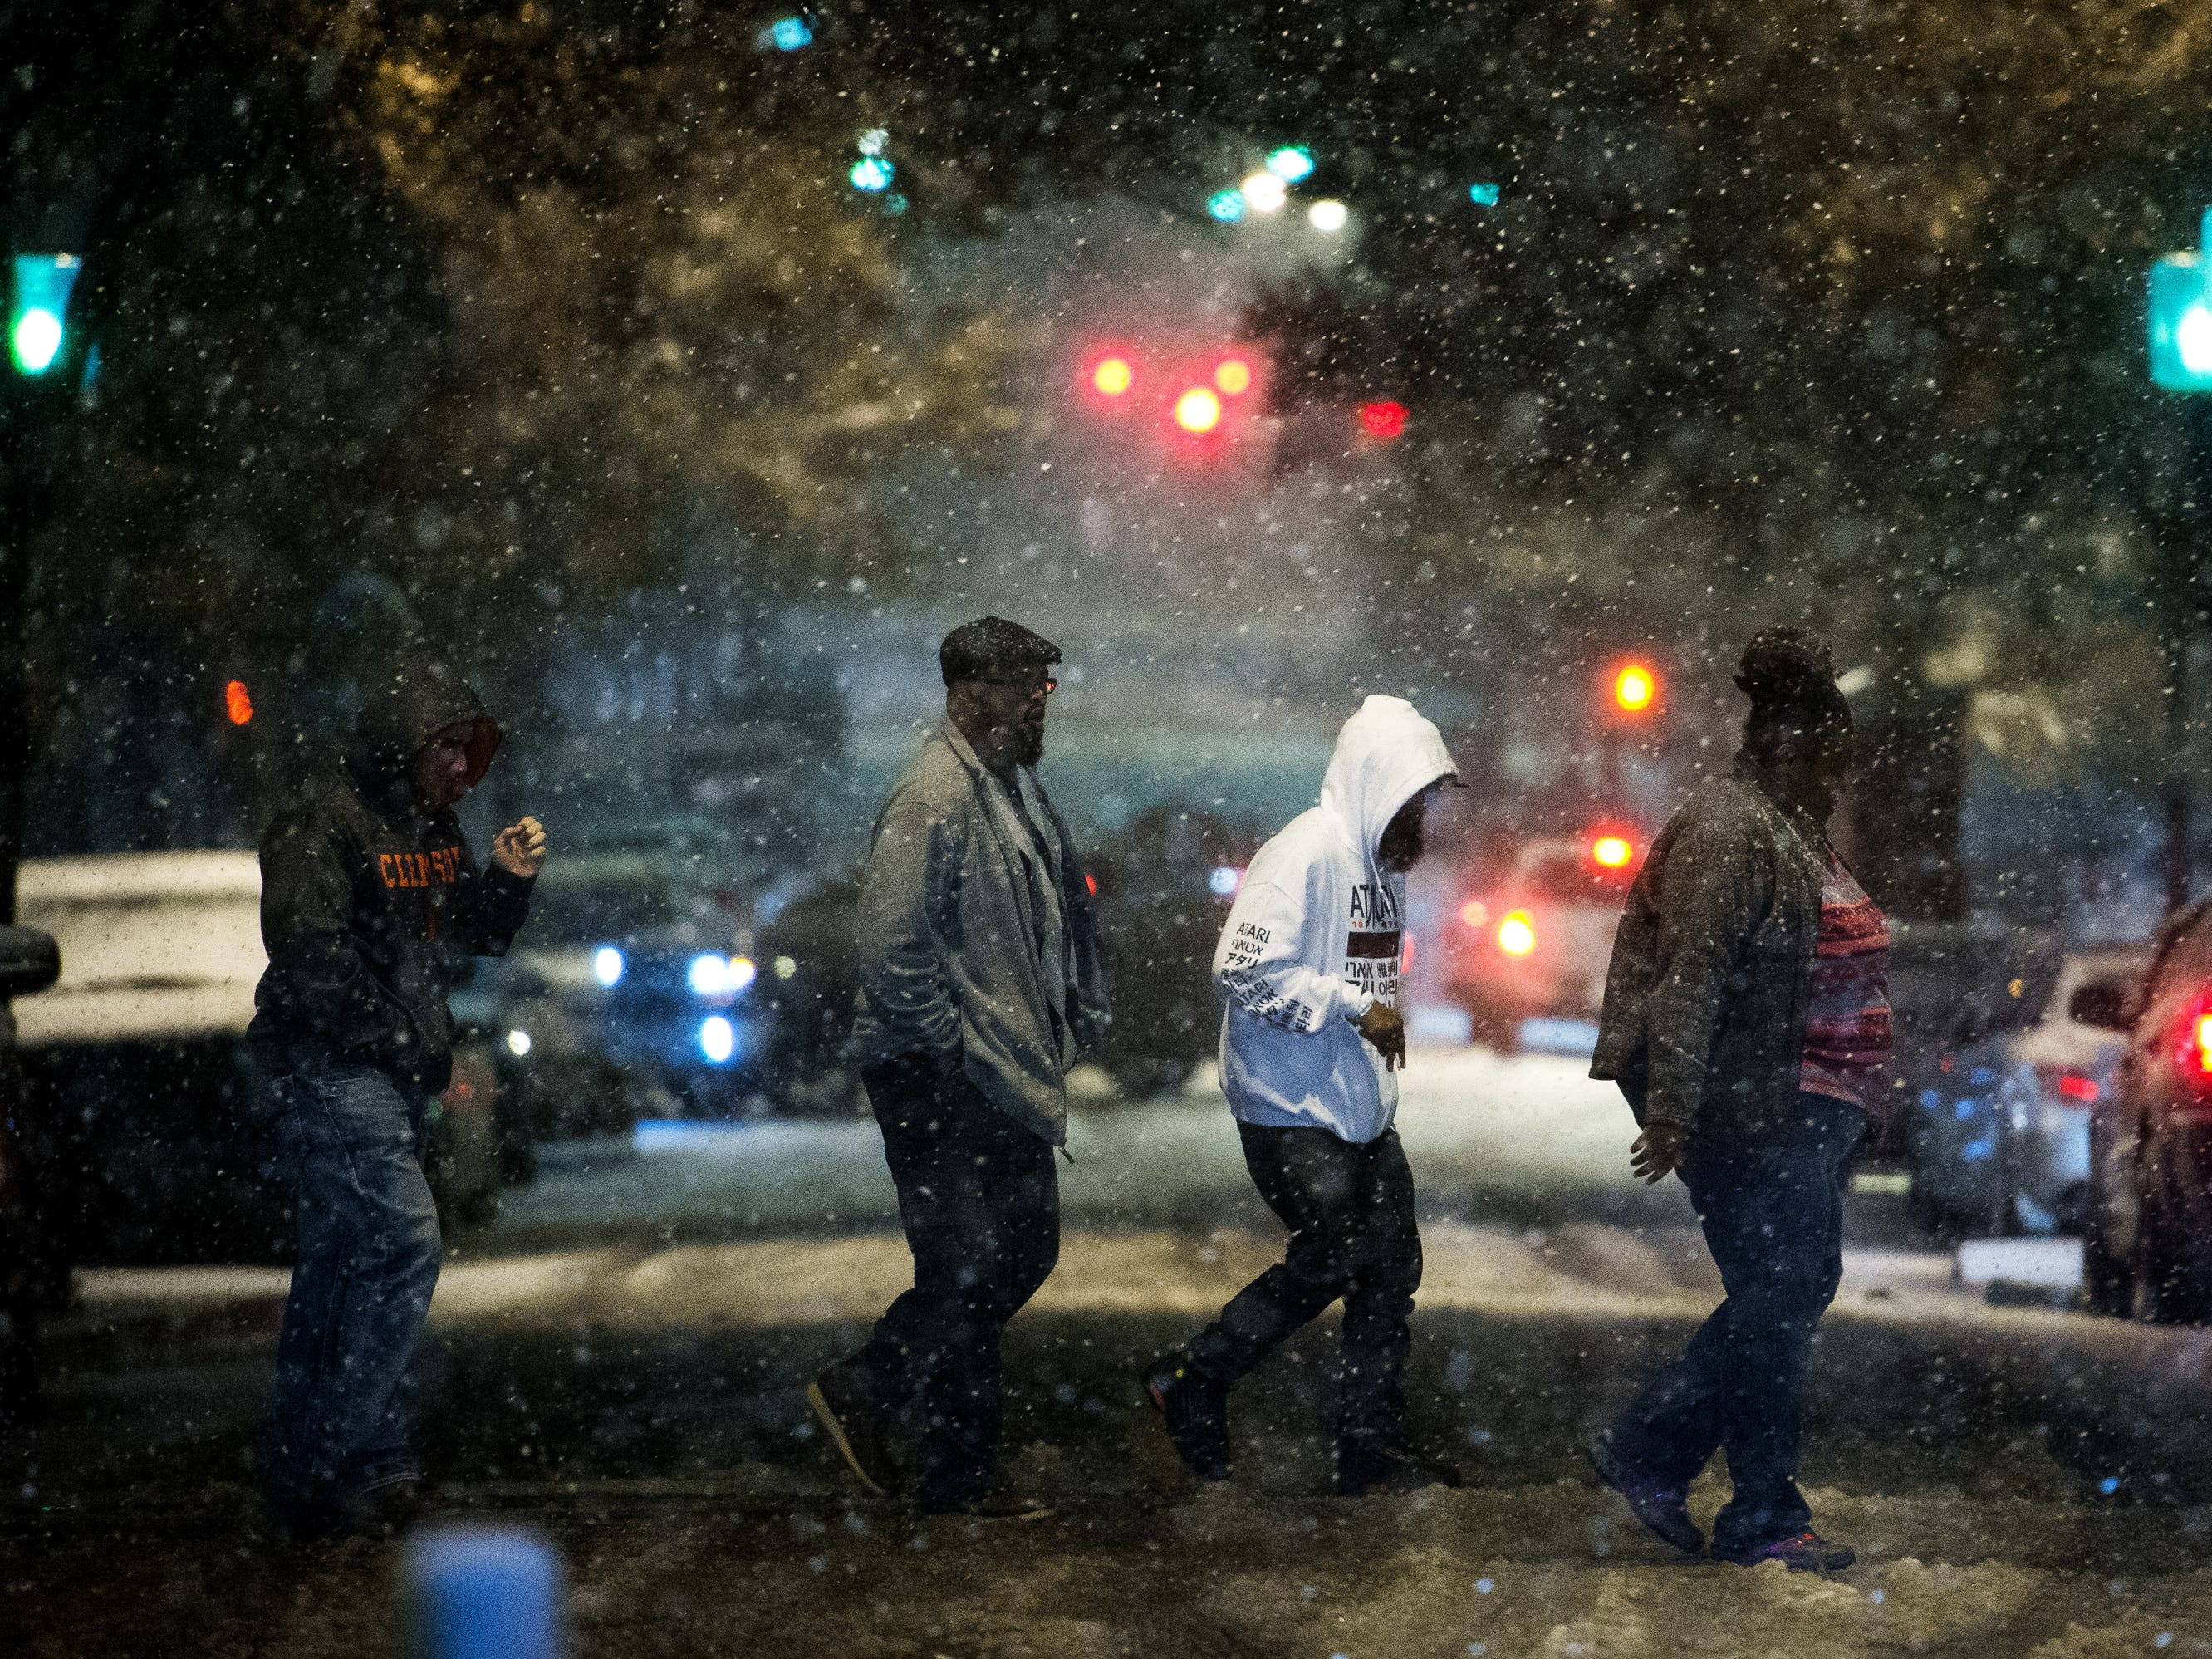 People walk across the street as it begins to snow in downtown Greenville on Sunday, Dec. 9, 2018.